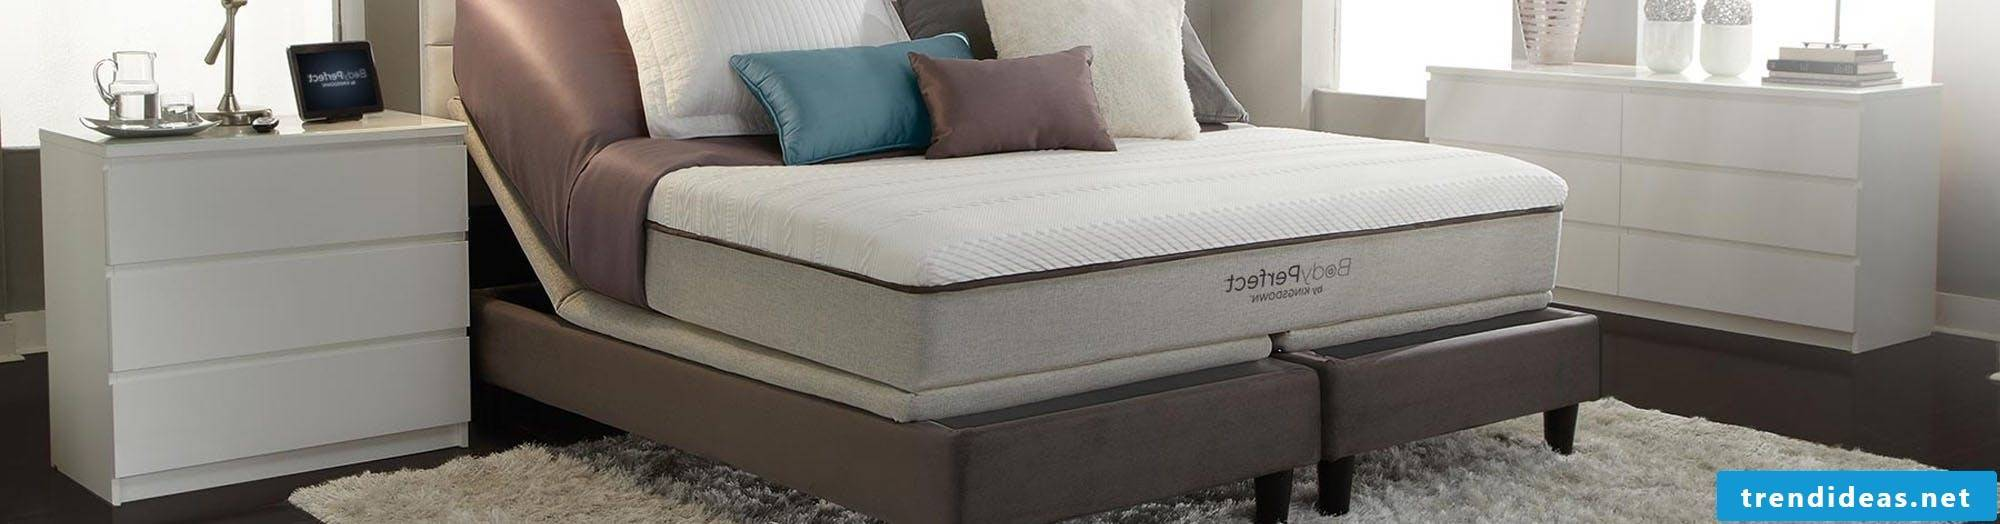 Box spring bed design